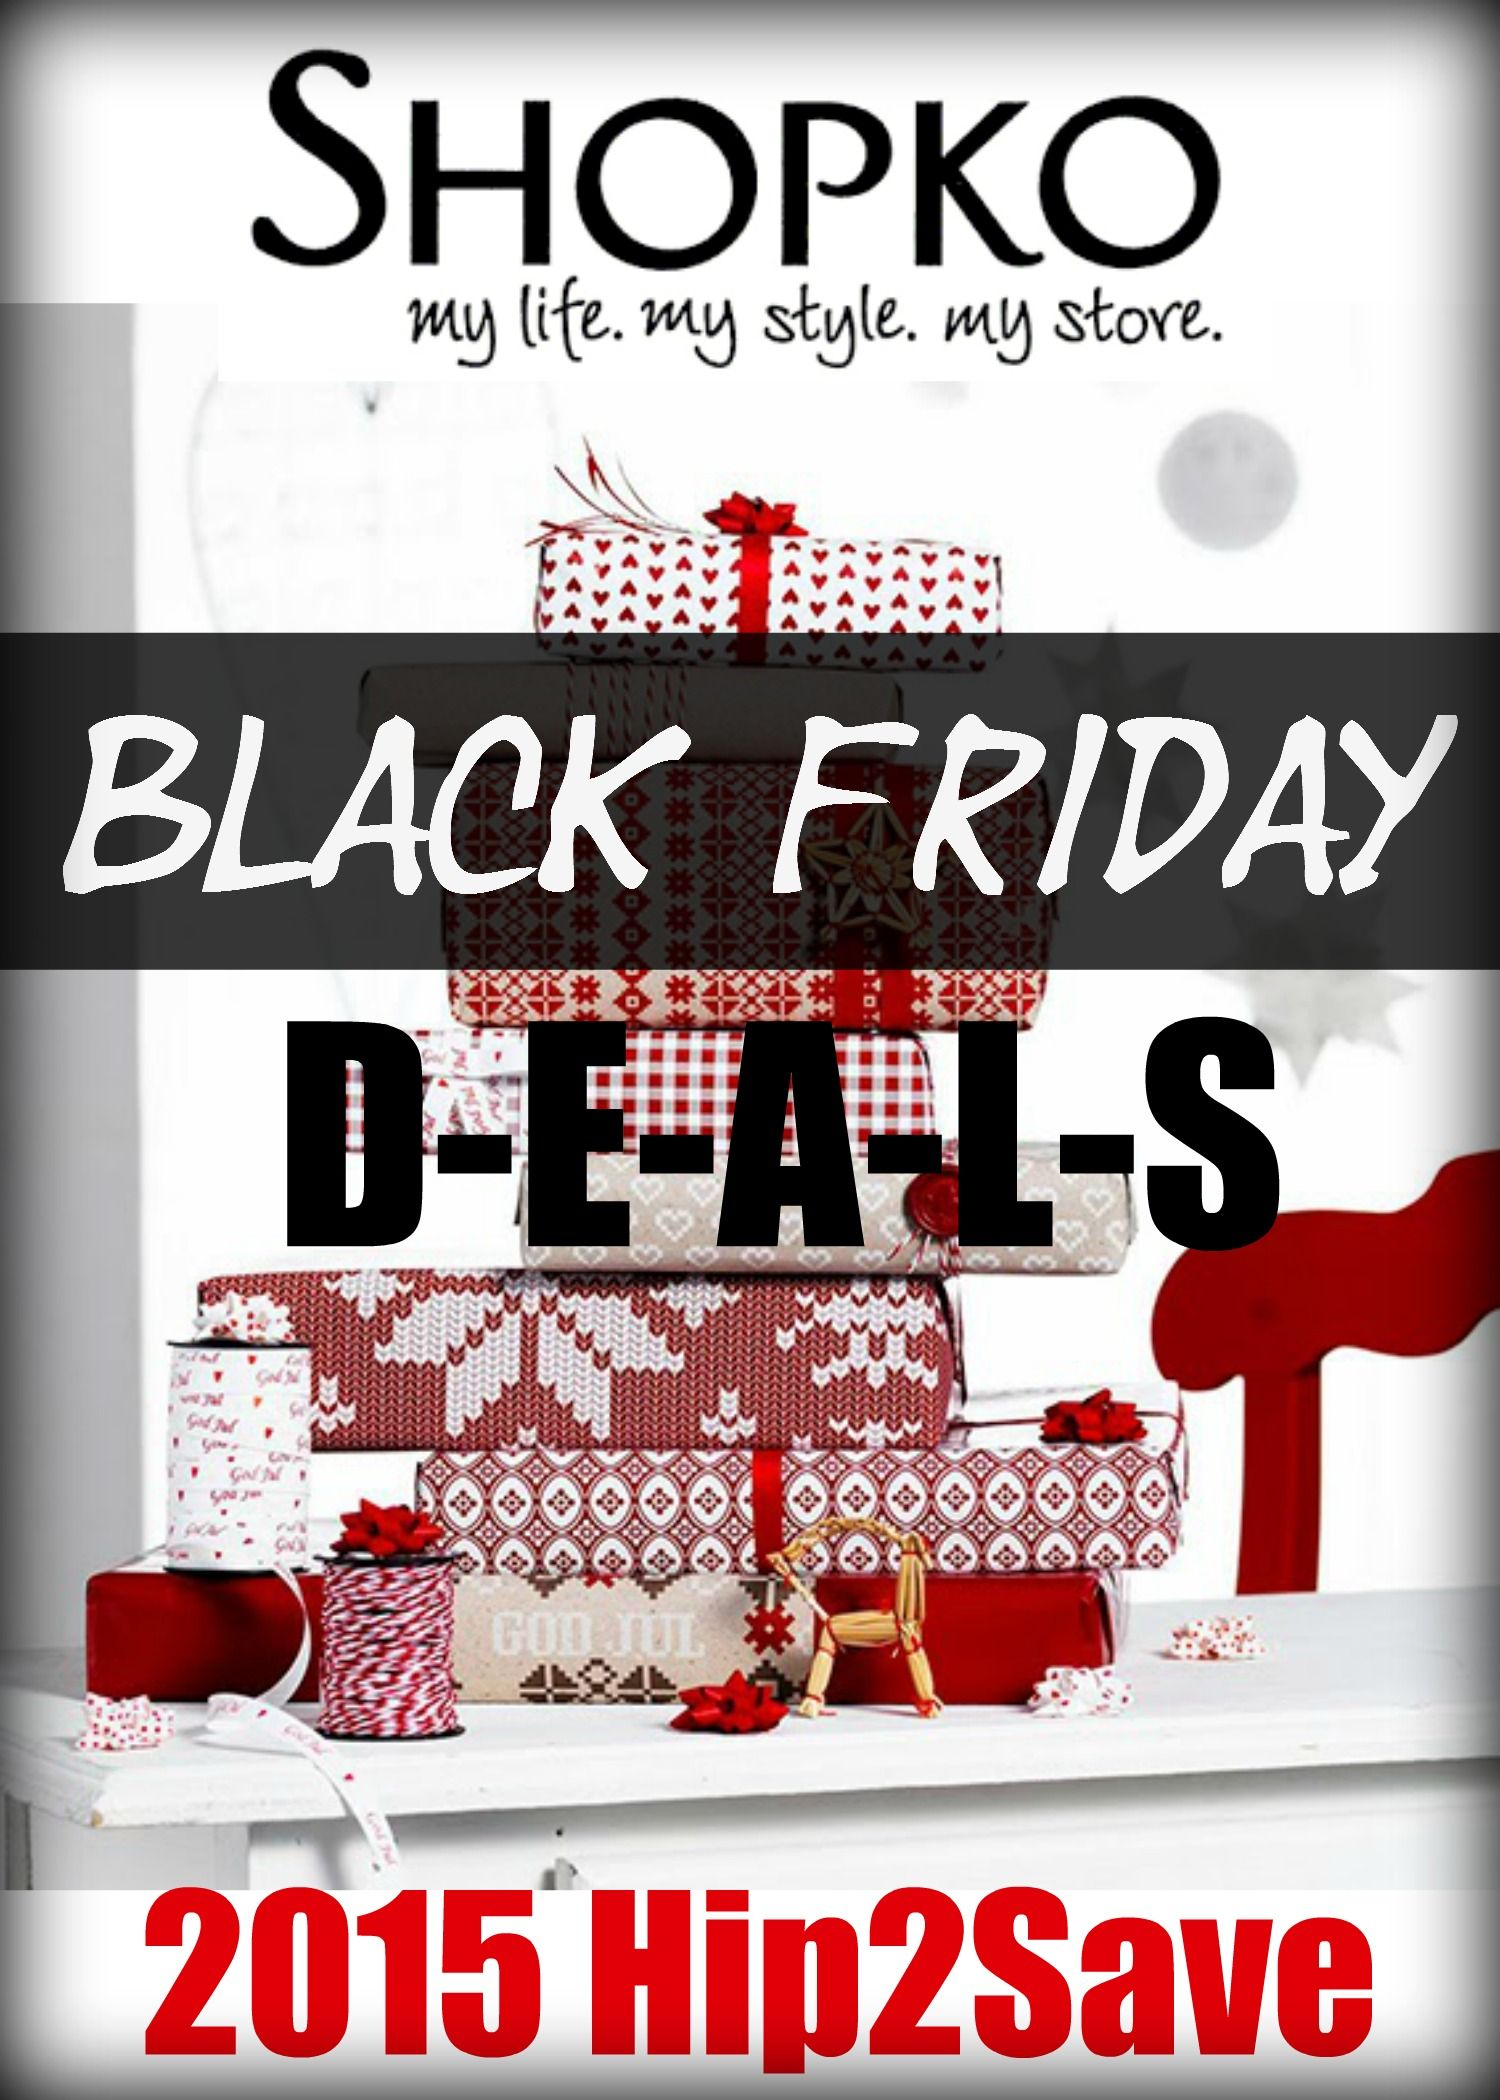 Shopko: 2015 Black Friday Deals are here! Find out when the deals start. There are definitely some amazing deals that will be hard to find anywhere else.